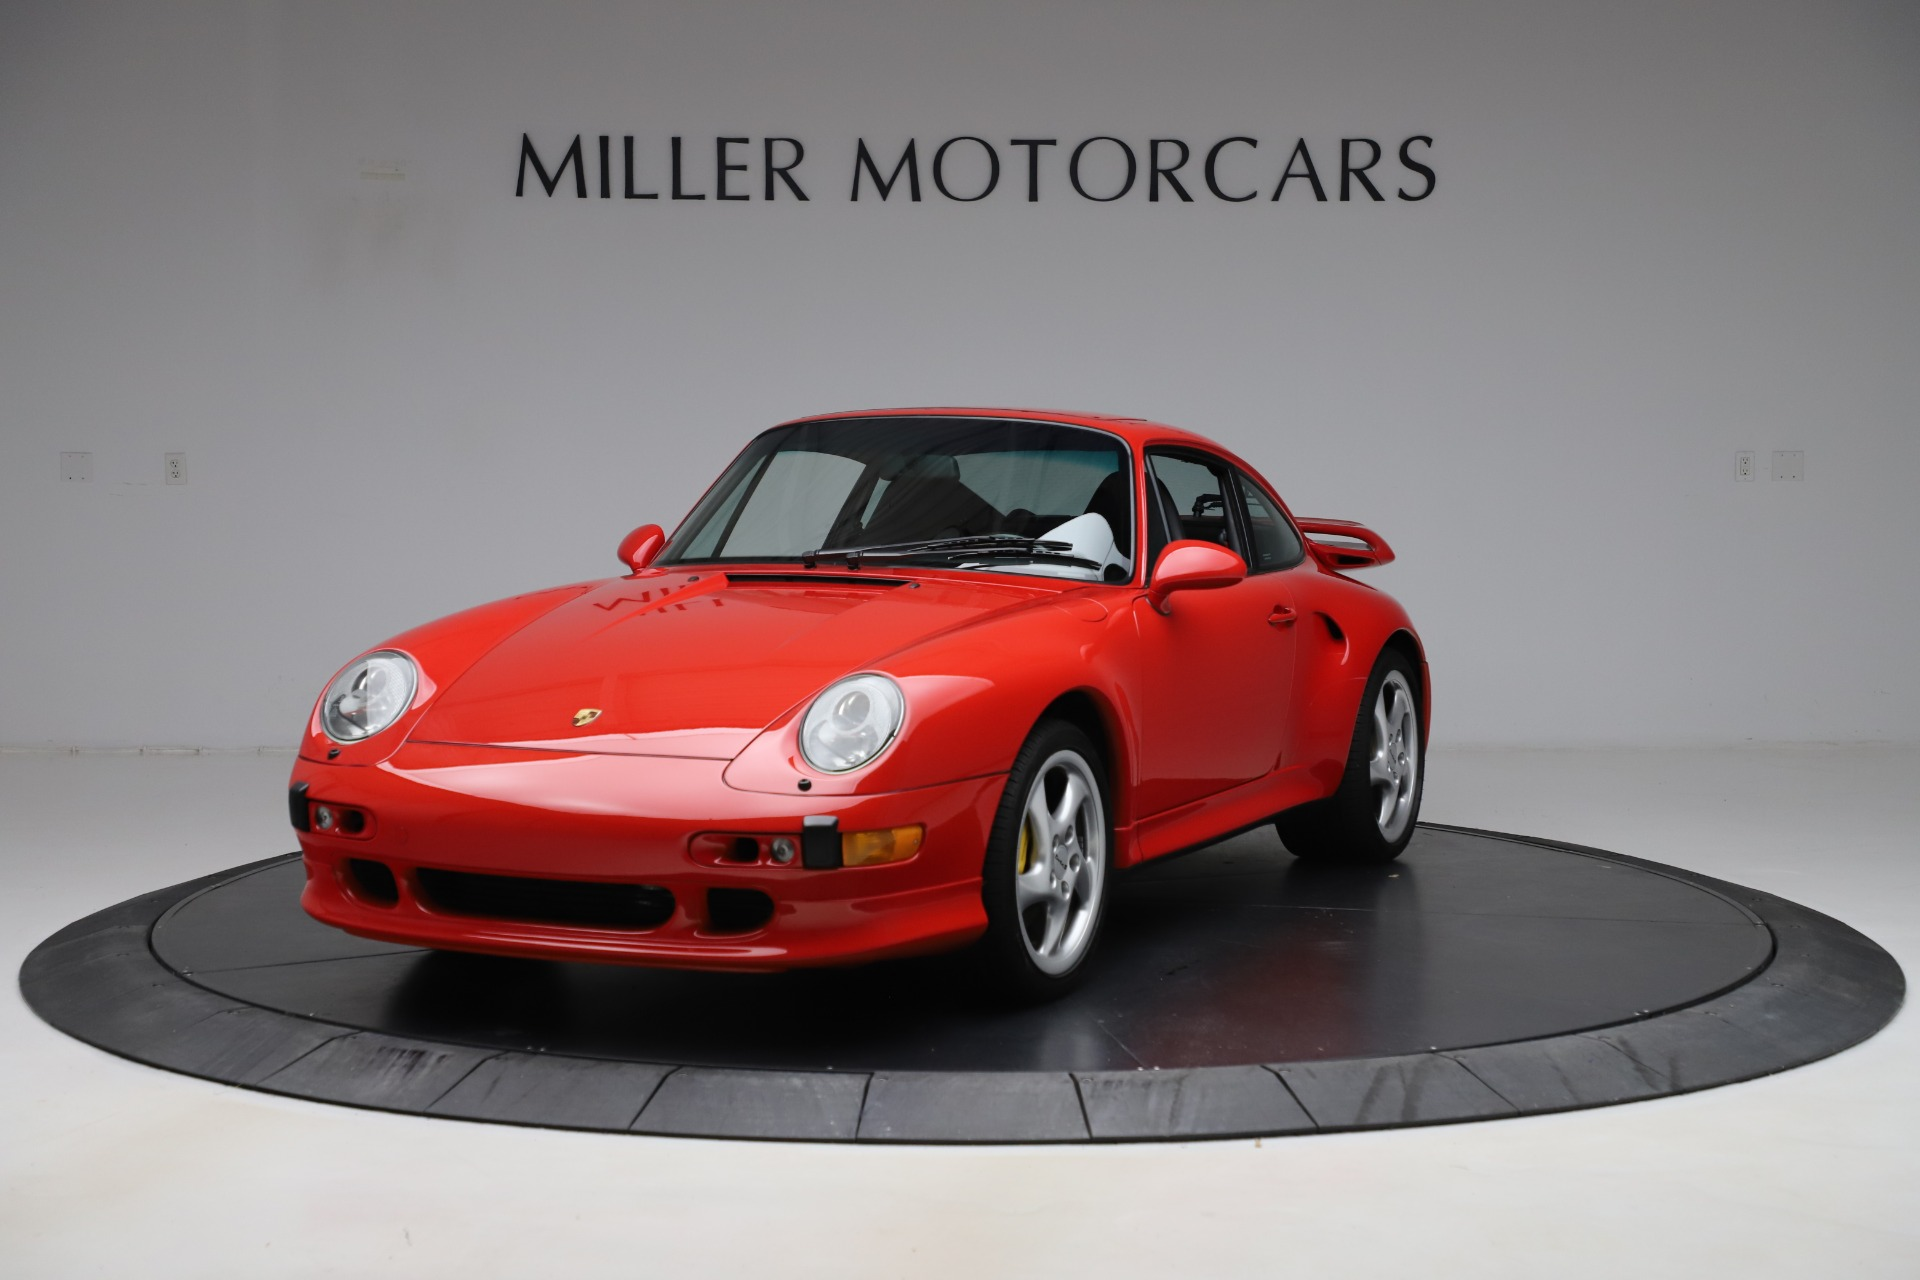 Used 1997 Porsche 911 Turbo S for sale $429,900 at Pagani of Greenwich in Greenwich CT 06830 1